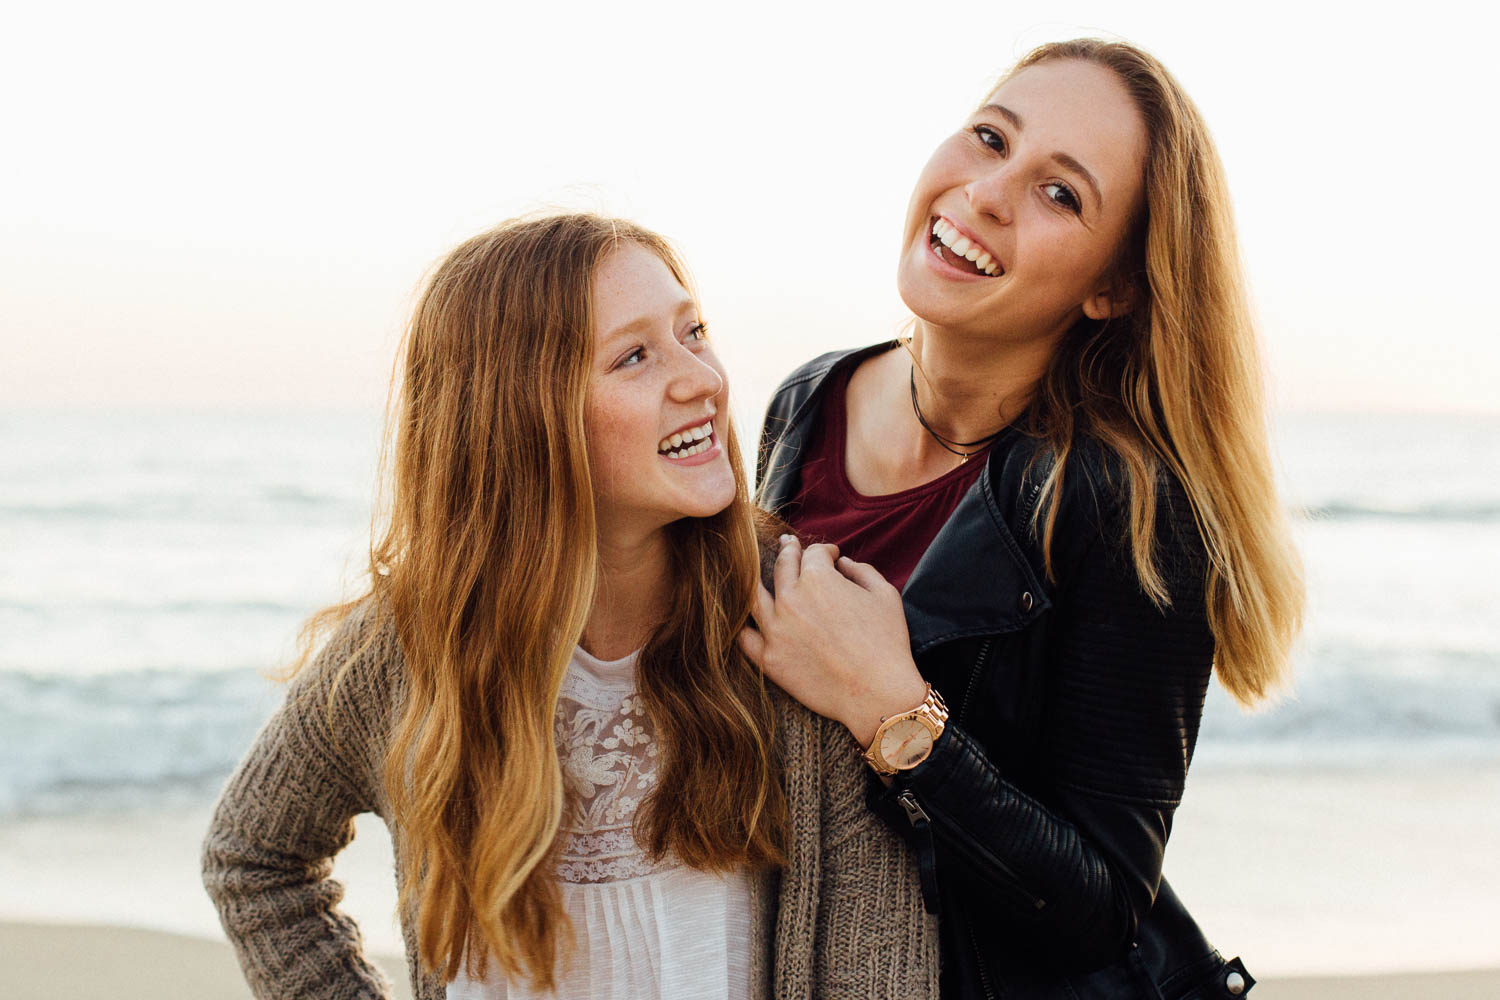 I encourage my senior session clients to bring a friend and I always try to get at least one photo of the two together, then I include it in their gallery as a complimentary gift. This is Sarah with her friend Averee.